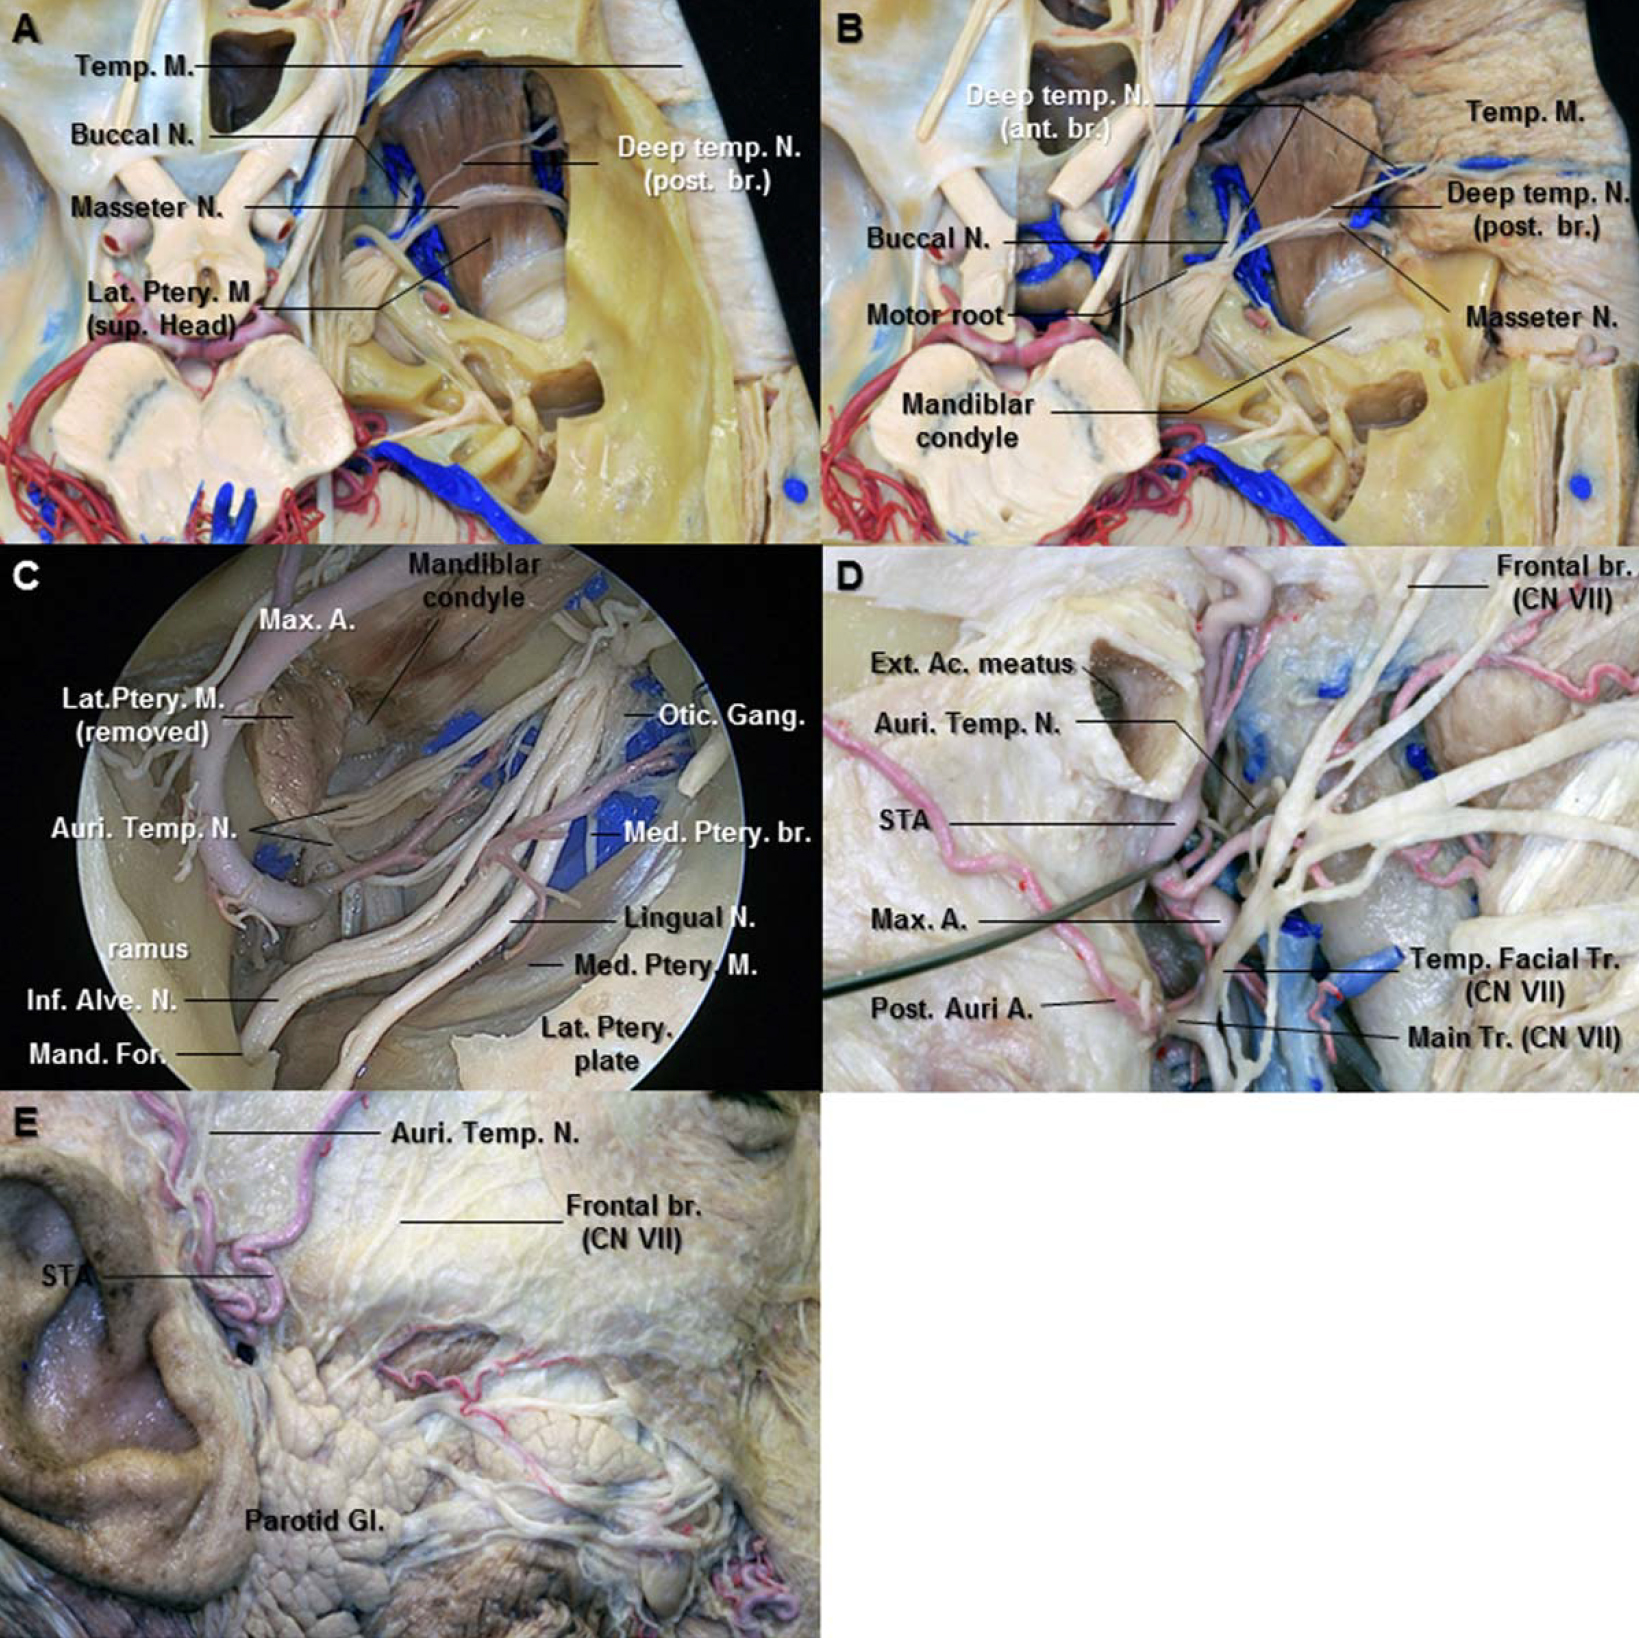 Figure 12. A. Superior view after removing the bone of middle fossa. The posterior deep temporal nerve runs on the superior surface of the superior head of the lateral pterygoid muscle. The masseter nerve is the most posterior branch among the anterior division of the mandibular nerve. B. The squamous portion of the temporal bone has removed to expose deep surface of the temporal muscle. The anterior deep temporal nerve passes between the superior and inferior heads of the lateral pterygoid muscle. The deep temporal nerves enter the deep surface of the anterior portion of the temporal muscle. C. Enlarged view of the right infratemporal fossa. The middle meningeal artery passes between the two roots of the auriculotemporal nerve. The auriculotemporal nerve runs medial to lateral behind the neck of the mandible. D. Lateral view of the right mandibular neck area. The parotid gland has removed to expose the auriculotemporal and facial nerves. The auriculotemporal nerve gives off the parotid branches and ascends in the parotid gland between the temporomandibular joint and external acoustic meatus. It communicates with facial nerve at the posterior border of the mandibular ramus. E. Lateral view of the right preauricular area. The auriculotemporal nerve ascends posterior to the superficial temporal artery over the posterior root of zygoma. The frontal branches of the facial nerve pass over the zygomatic arch. Abbreviations: A., artery; Ac., acoustic; Ant., anterior; Auri. Temp. N., auriculotemporal nerve; Br., branch; Ext., external; Gang., ganglion; Gl., gland; Inf. Alv. N., inferior alveolar nerve; Lat., lateral; M., muscle; Mand. For., mandibular foramen; Max., maxillary; Med., medial; N., nerve; Post., posterior; Post. Auri. A., posterior auricular artery; Ptery., pterygoid; STA., superficial temporal artery; Sup., superior; Temp., temporal; Tr., trunk. (Images courtesy of AL Rhoton, Jr.)